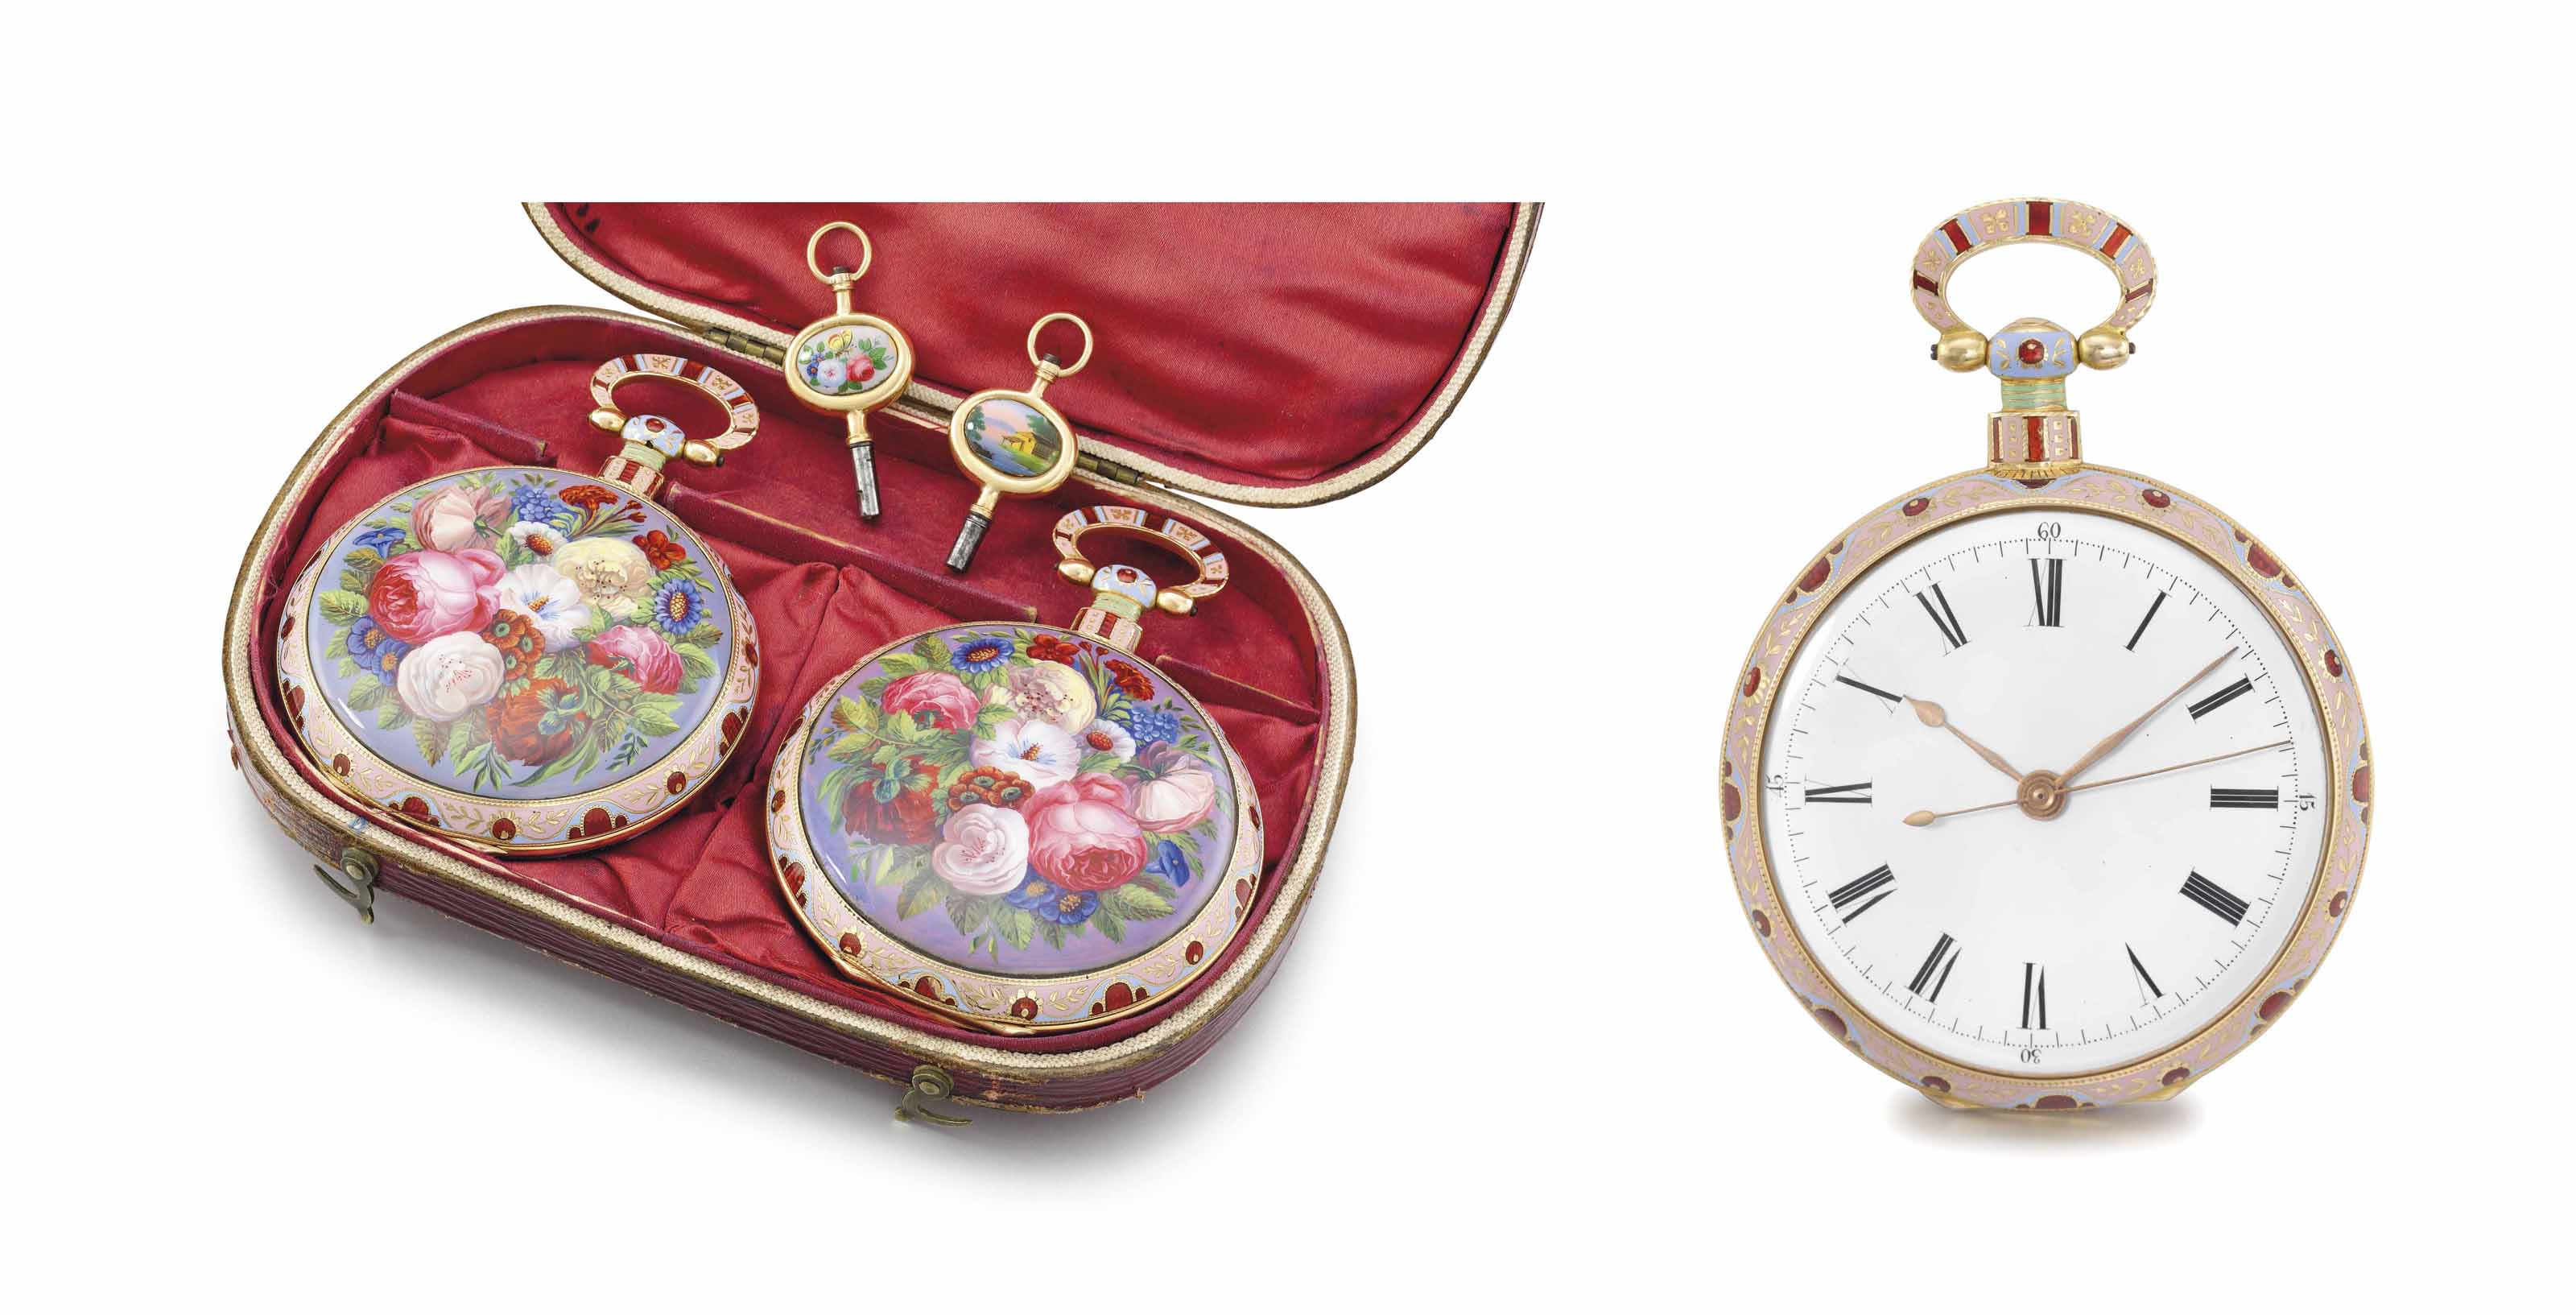 Vaucher, Fleurier. An exceptionally fine, rare and important 18K gold and enamel identical numbered, mirror-image pair of openface centre seconds duplex watches with matching gold and enamel keys and fitted box, made for the Chinese market